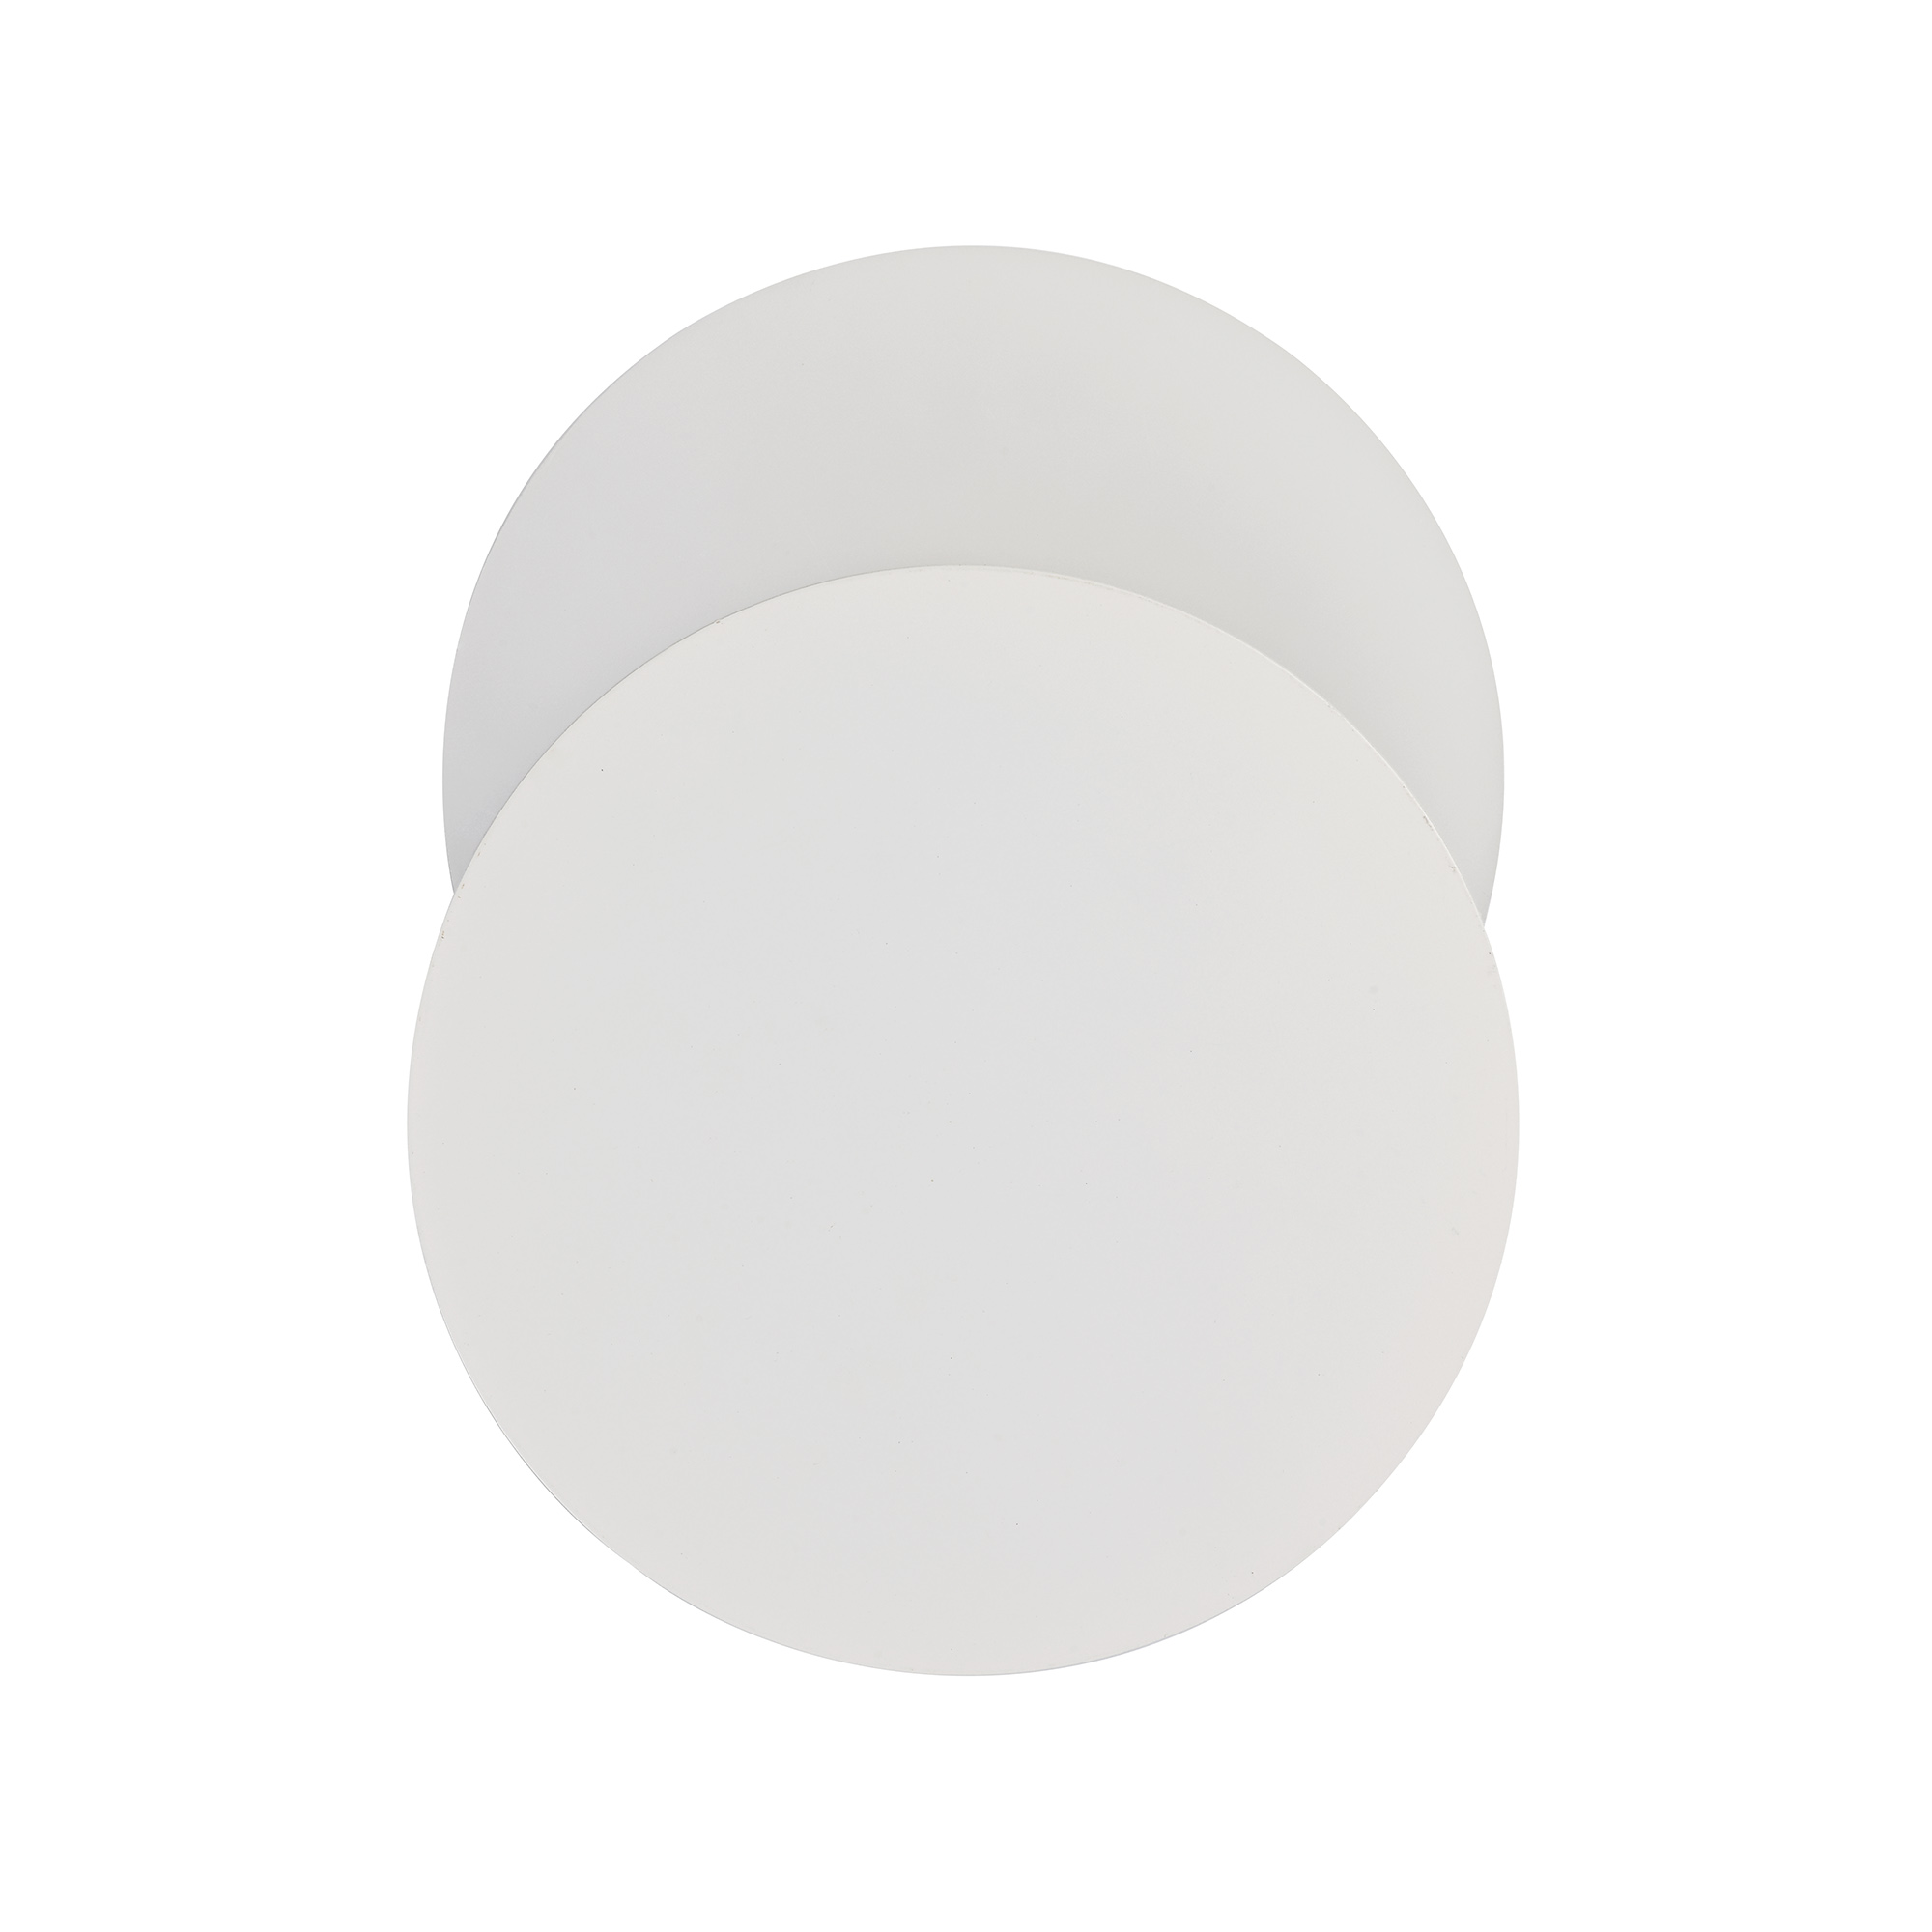 Magnetic Base Wall Lamp, 12W LED 3000K 498lm, 20/19cm Round Bottom Offset, Frosted Diffuser